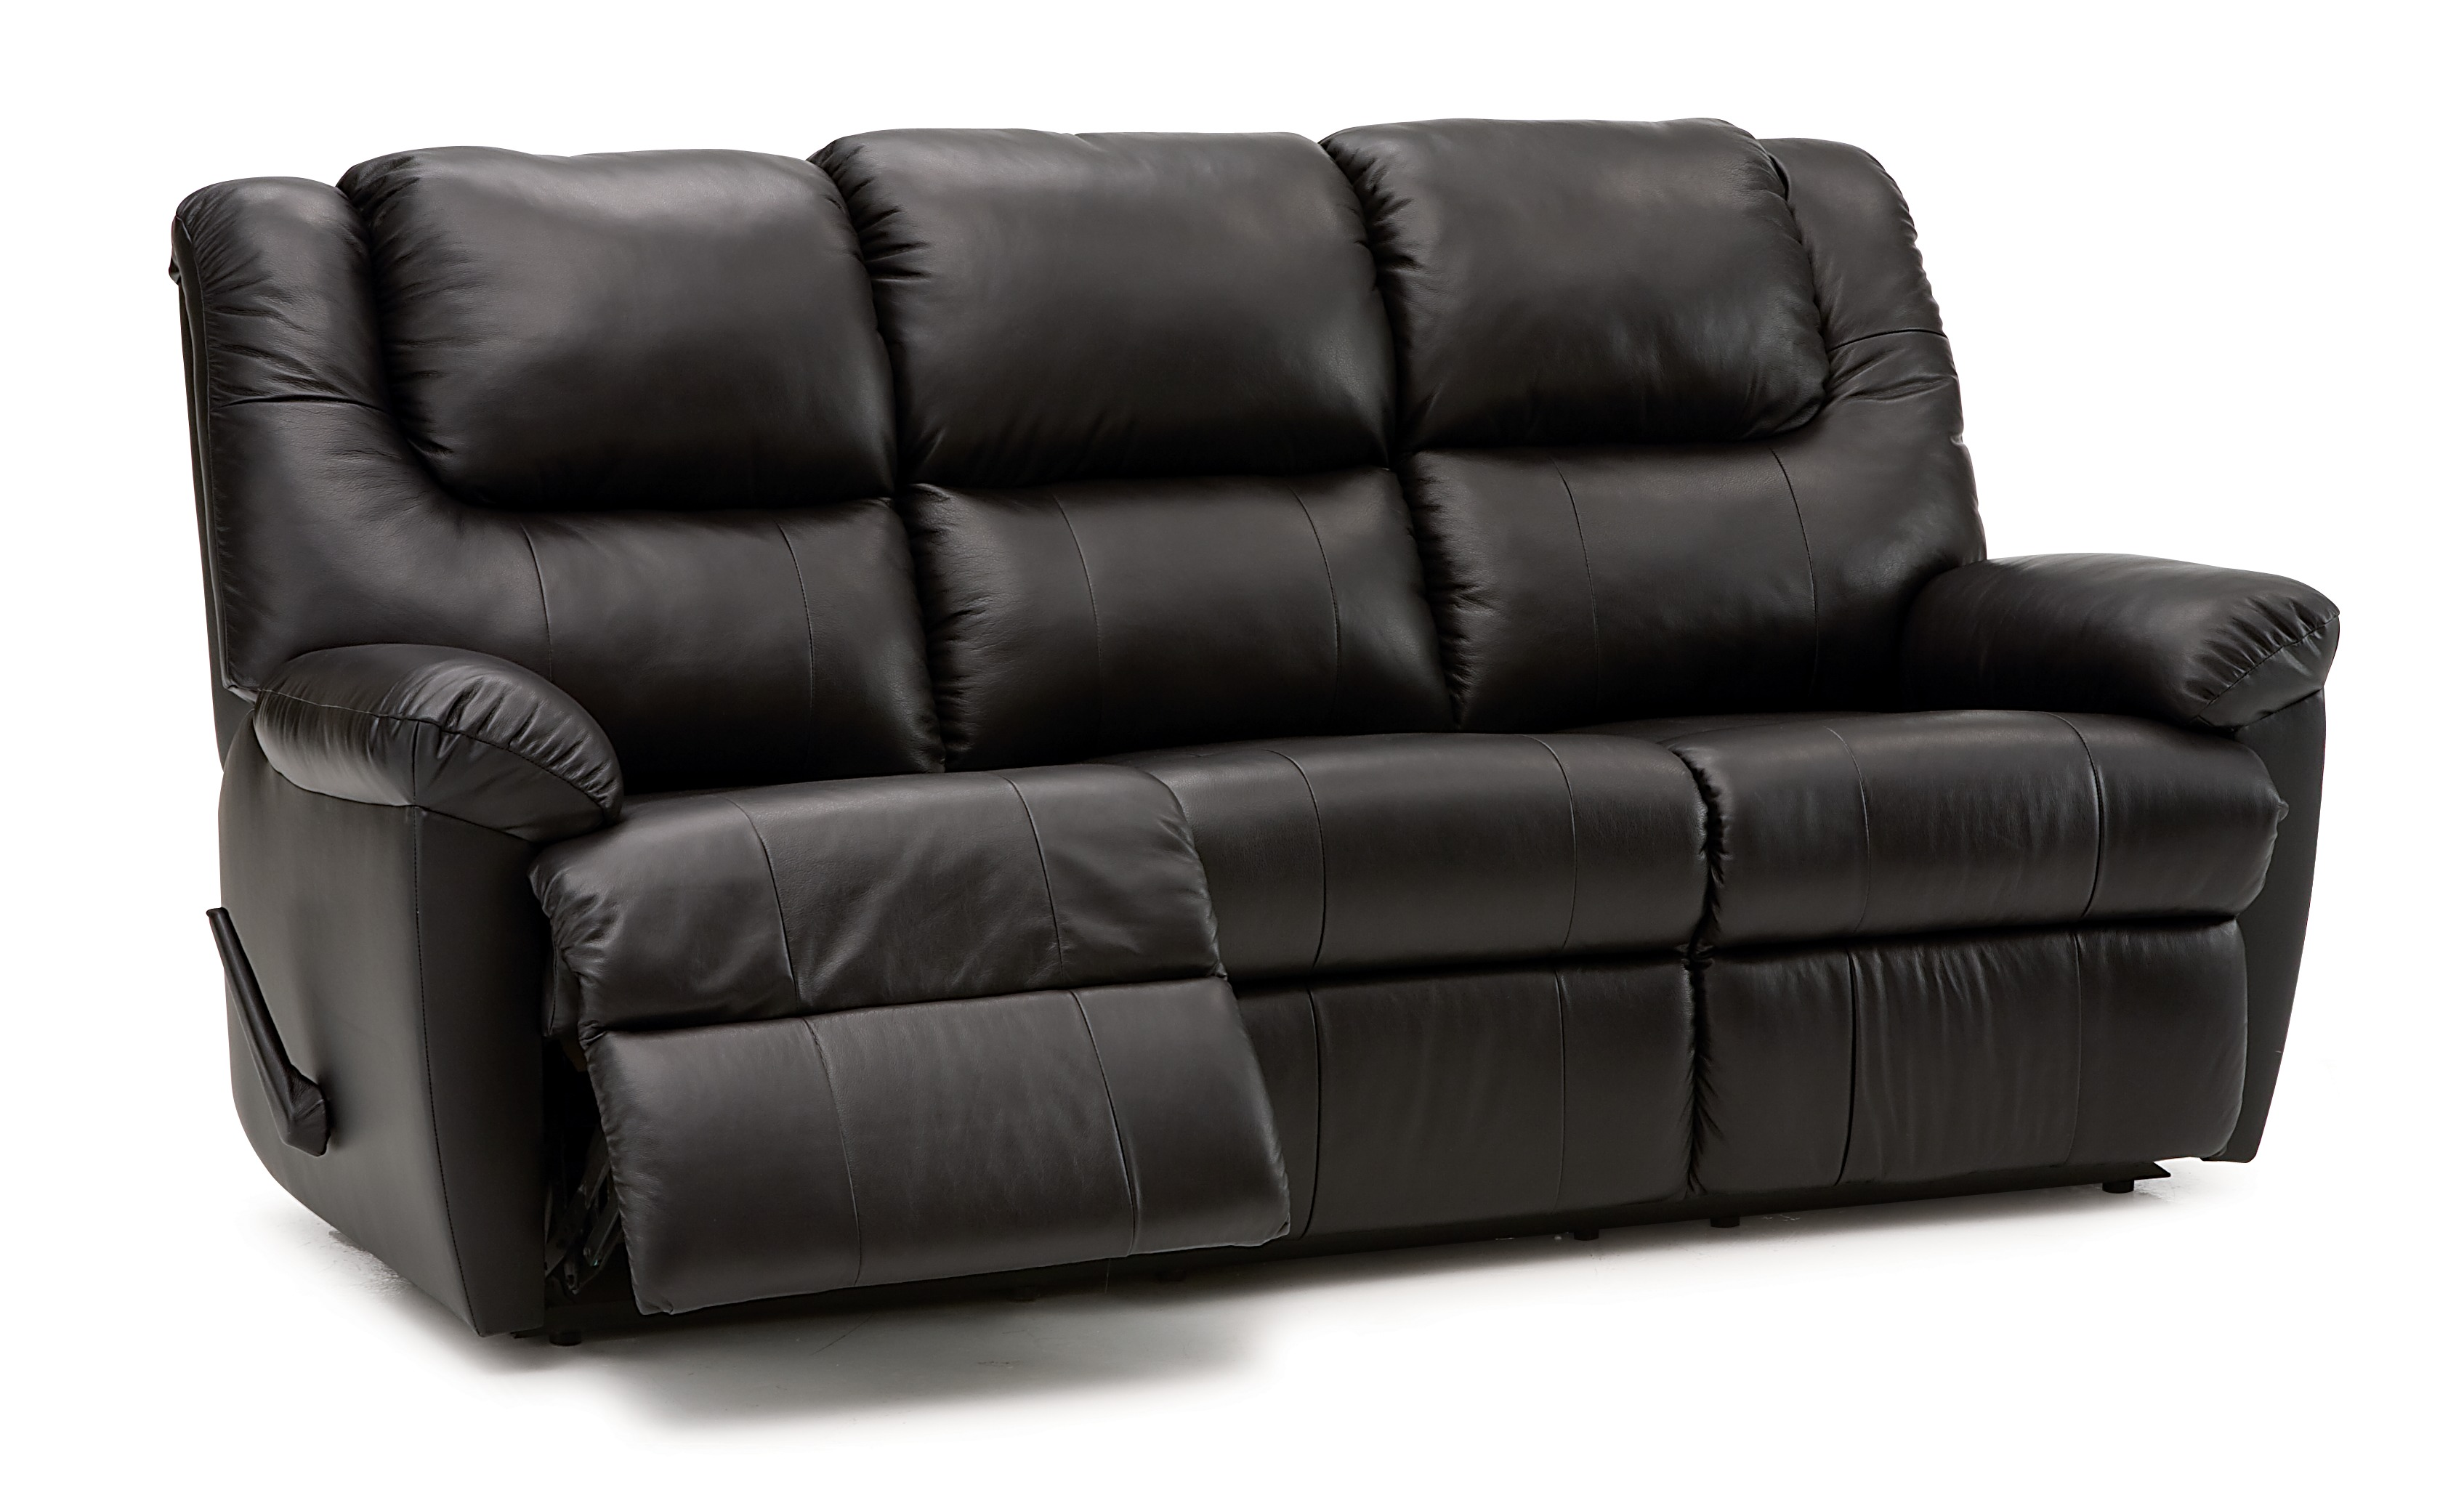 stanton collection lane furniture recliners and reclining